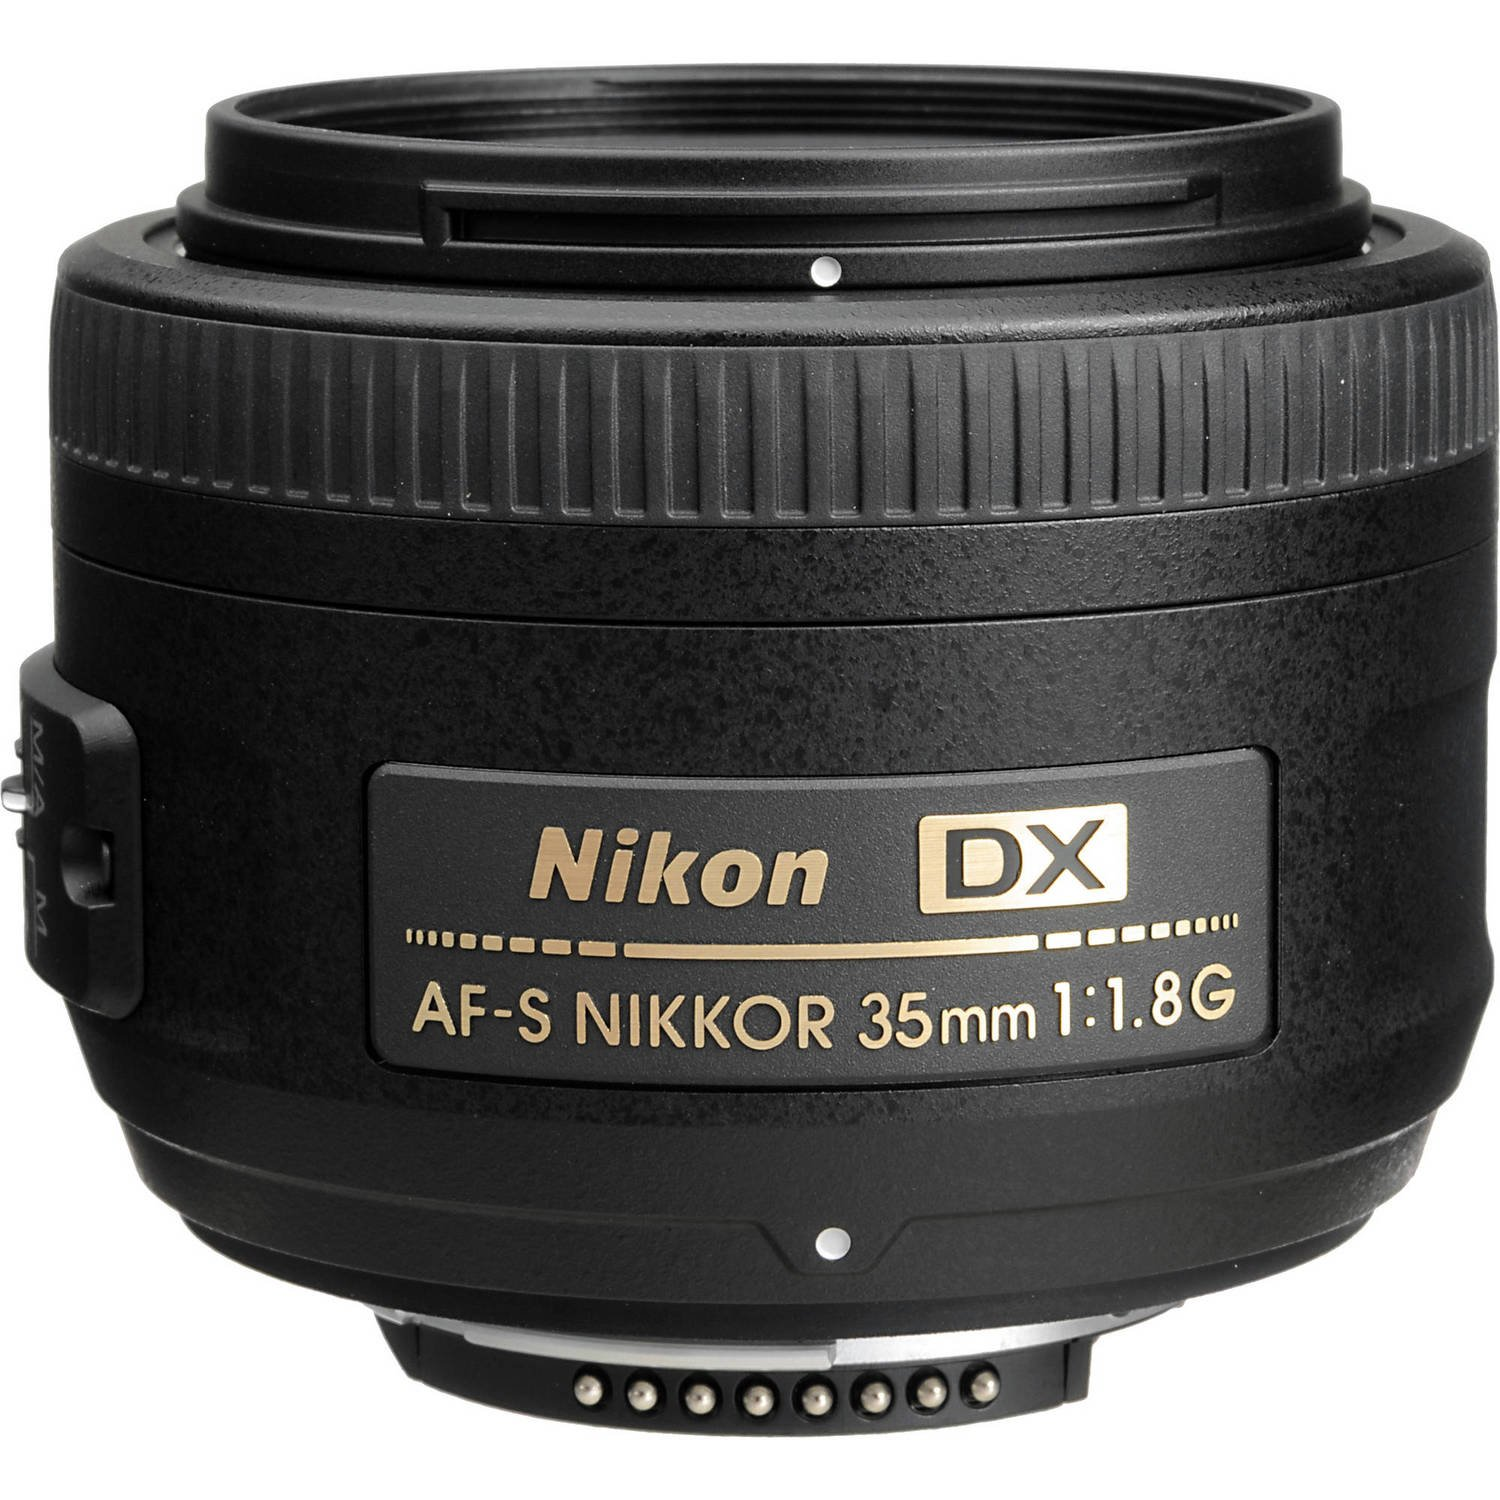 Amazon.com : Nikon AF-S DX 35mm F/1.8G Lens : Camera Lenses : Camera & Photo